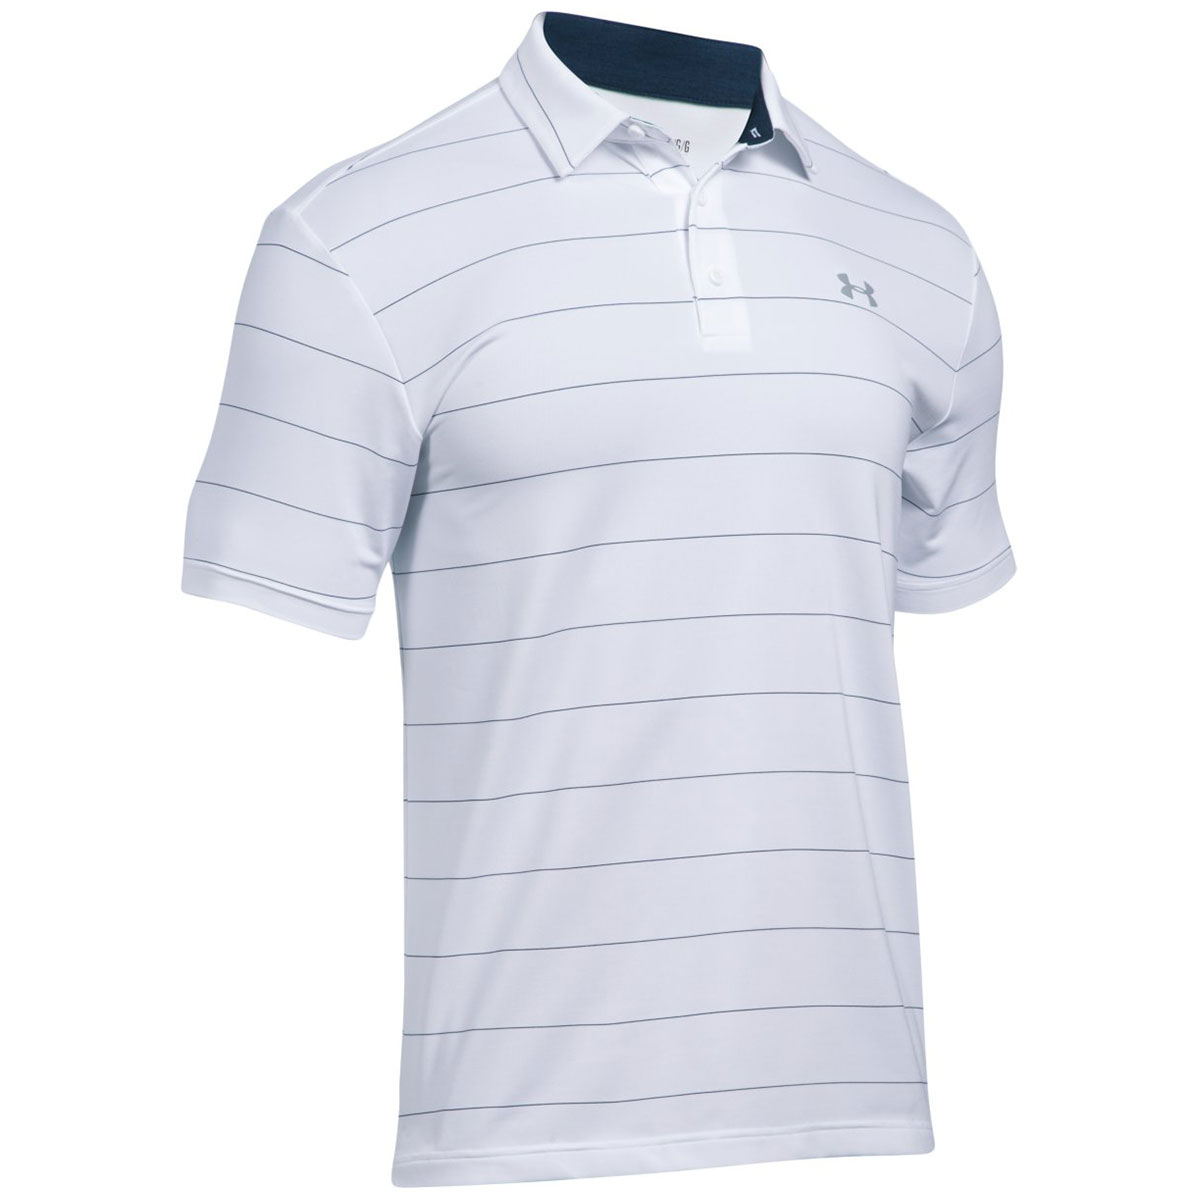 under armour golf t shirt cheap   OFF42% The Largest Catalog Discounts 9781ebc0287e9